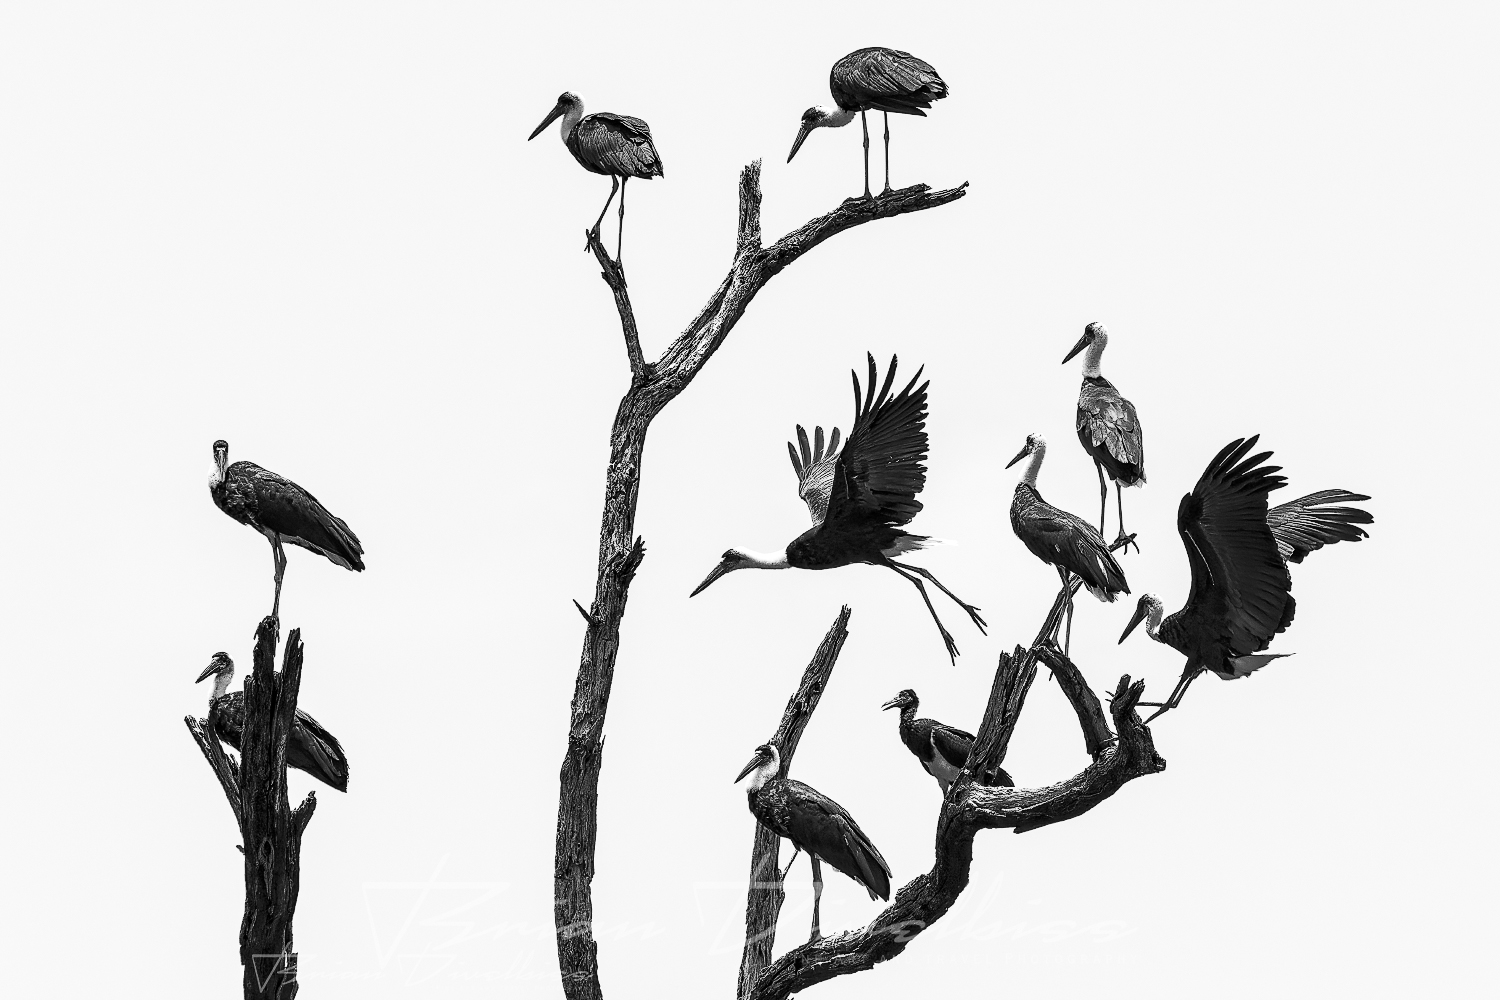 A collection of african cranes in various poses.